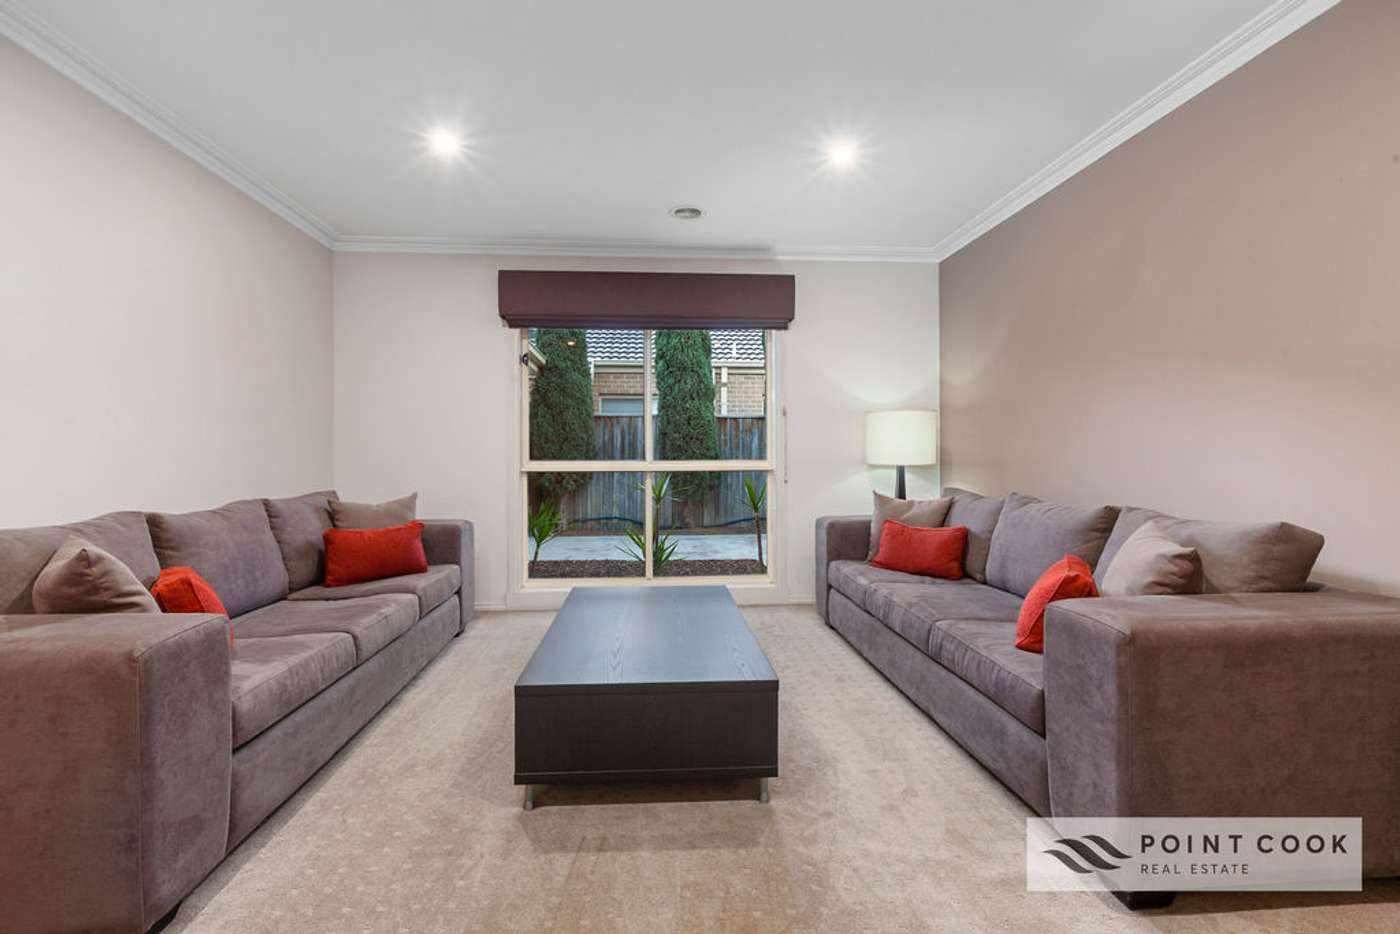 Sixth view of Homely house listing, 22 Maidenhair Drive, Point Cook VIC 3030